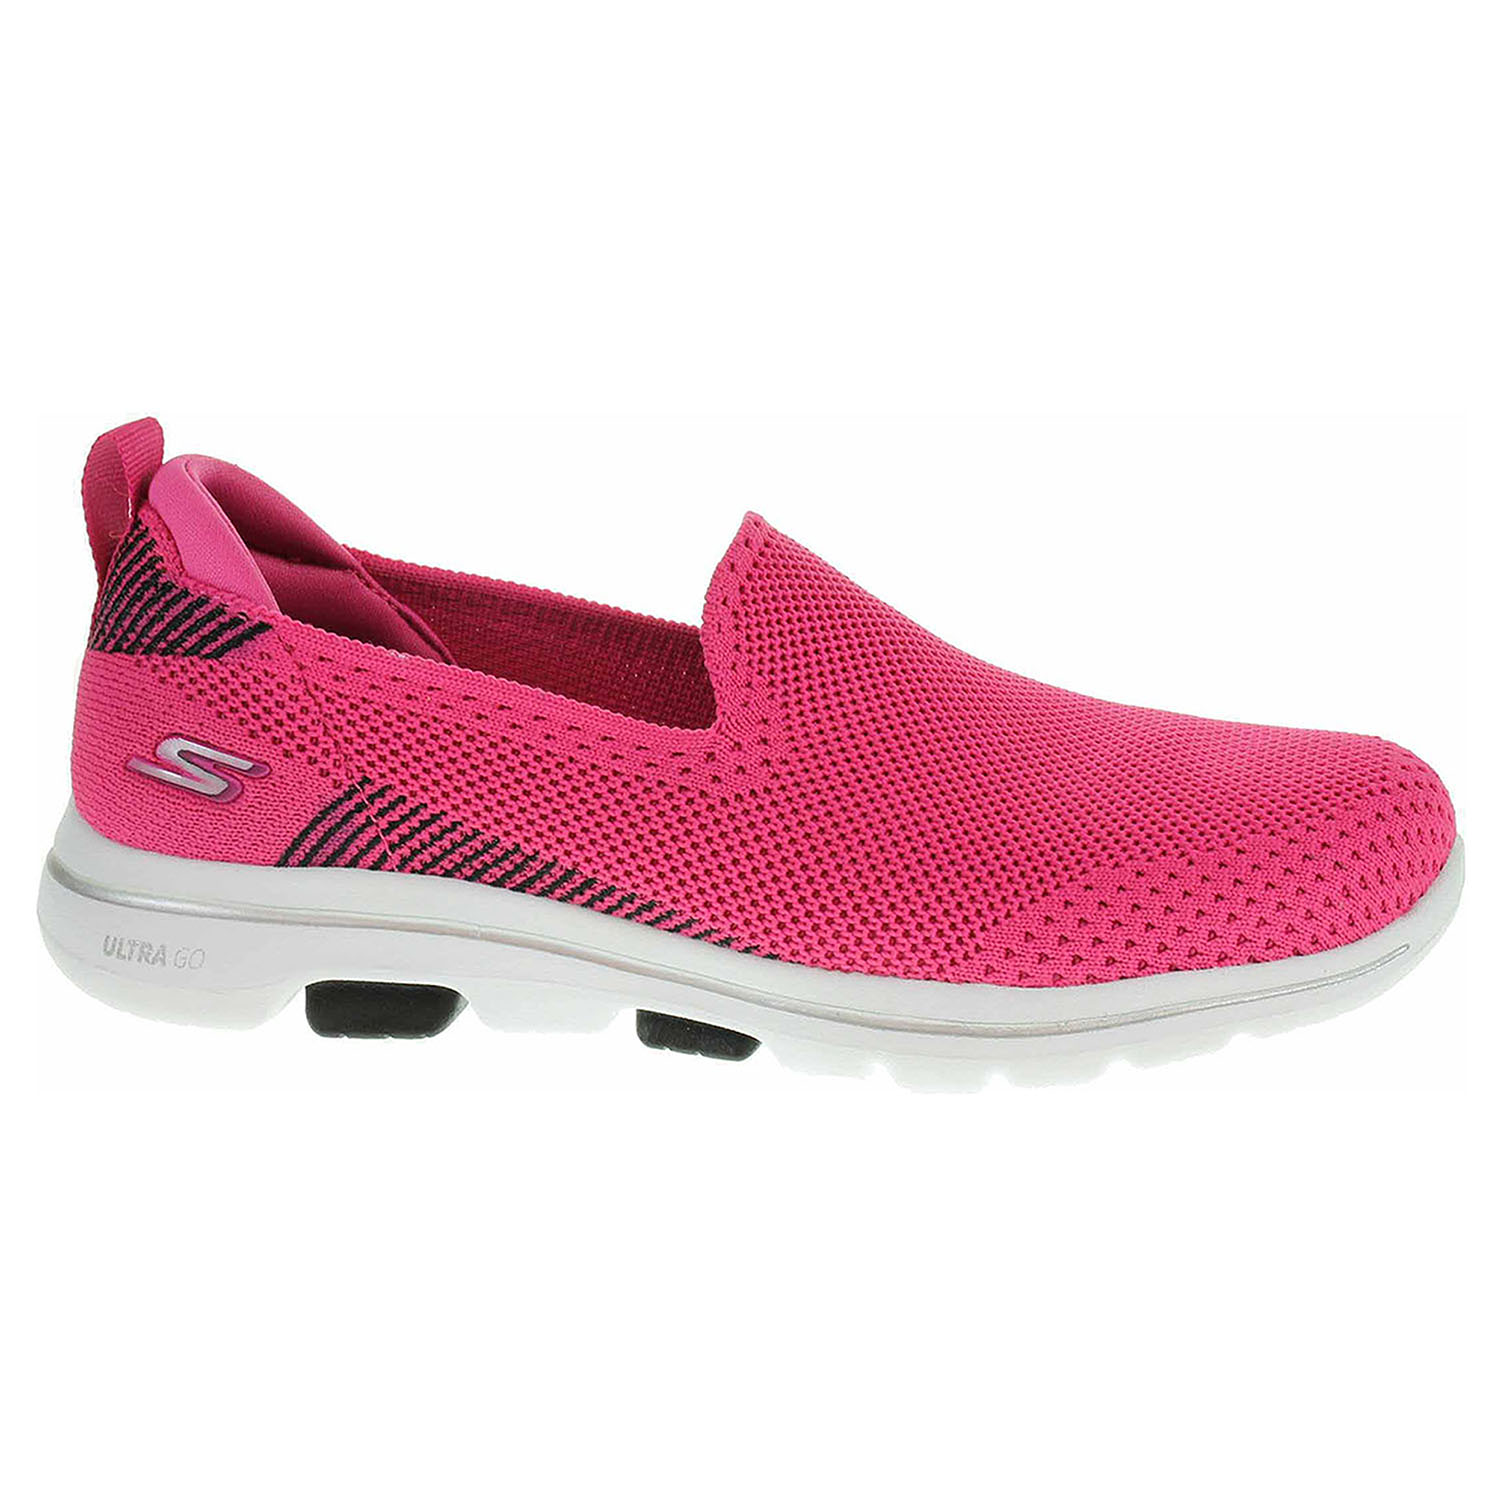 Skechers Go Walk 5 - Prized pink-black 15900 PKBK 39